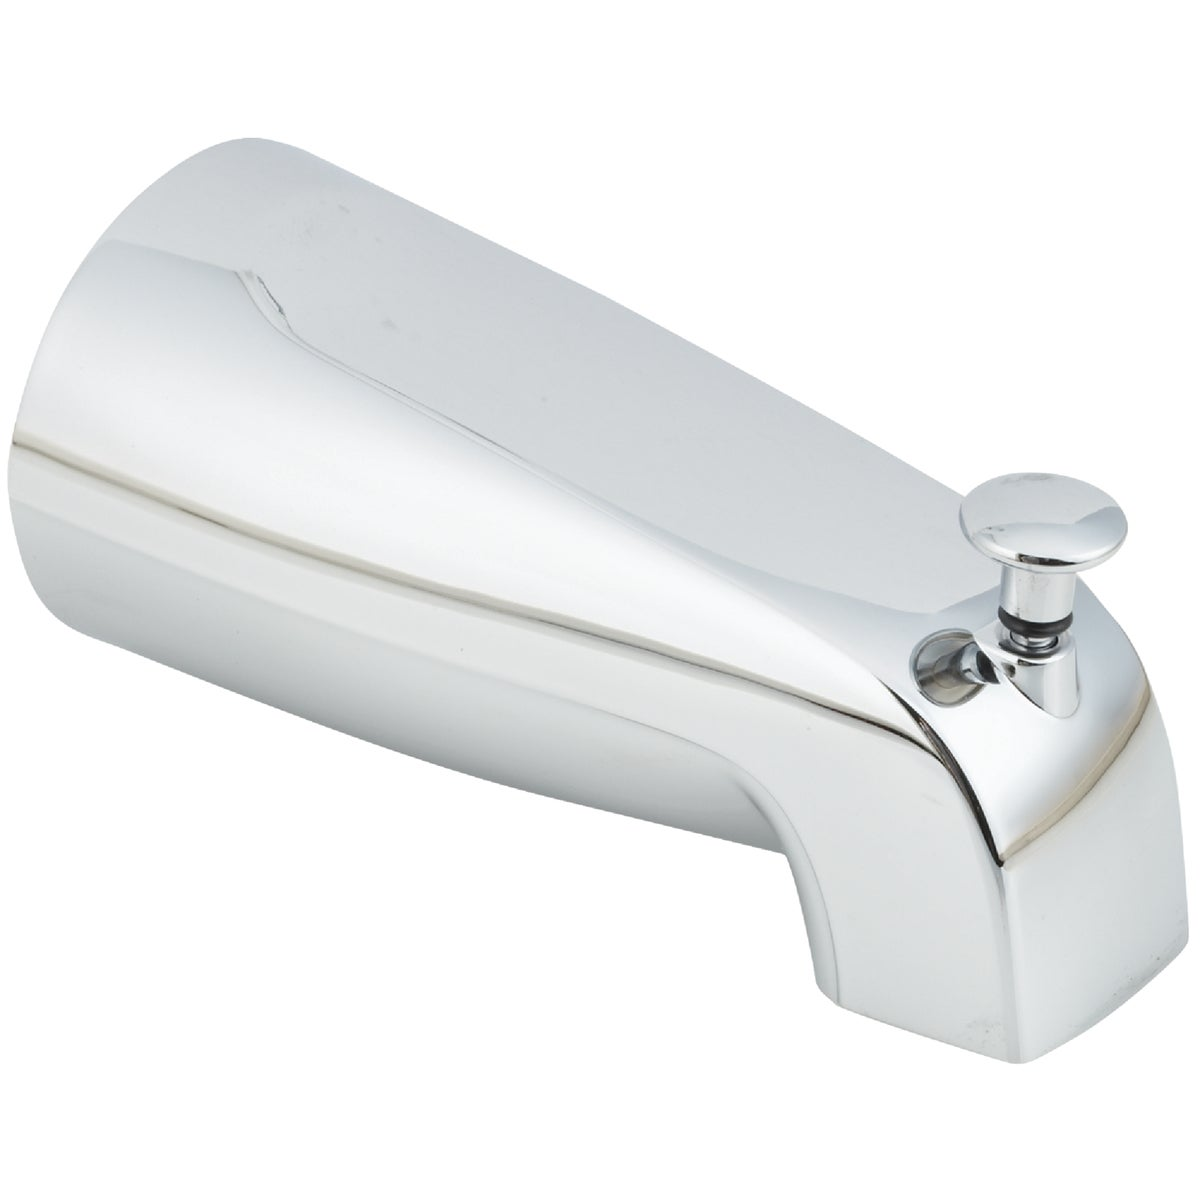 CHR TUB SPOUT W/DIVERTER - 414891 by Do it Best